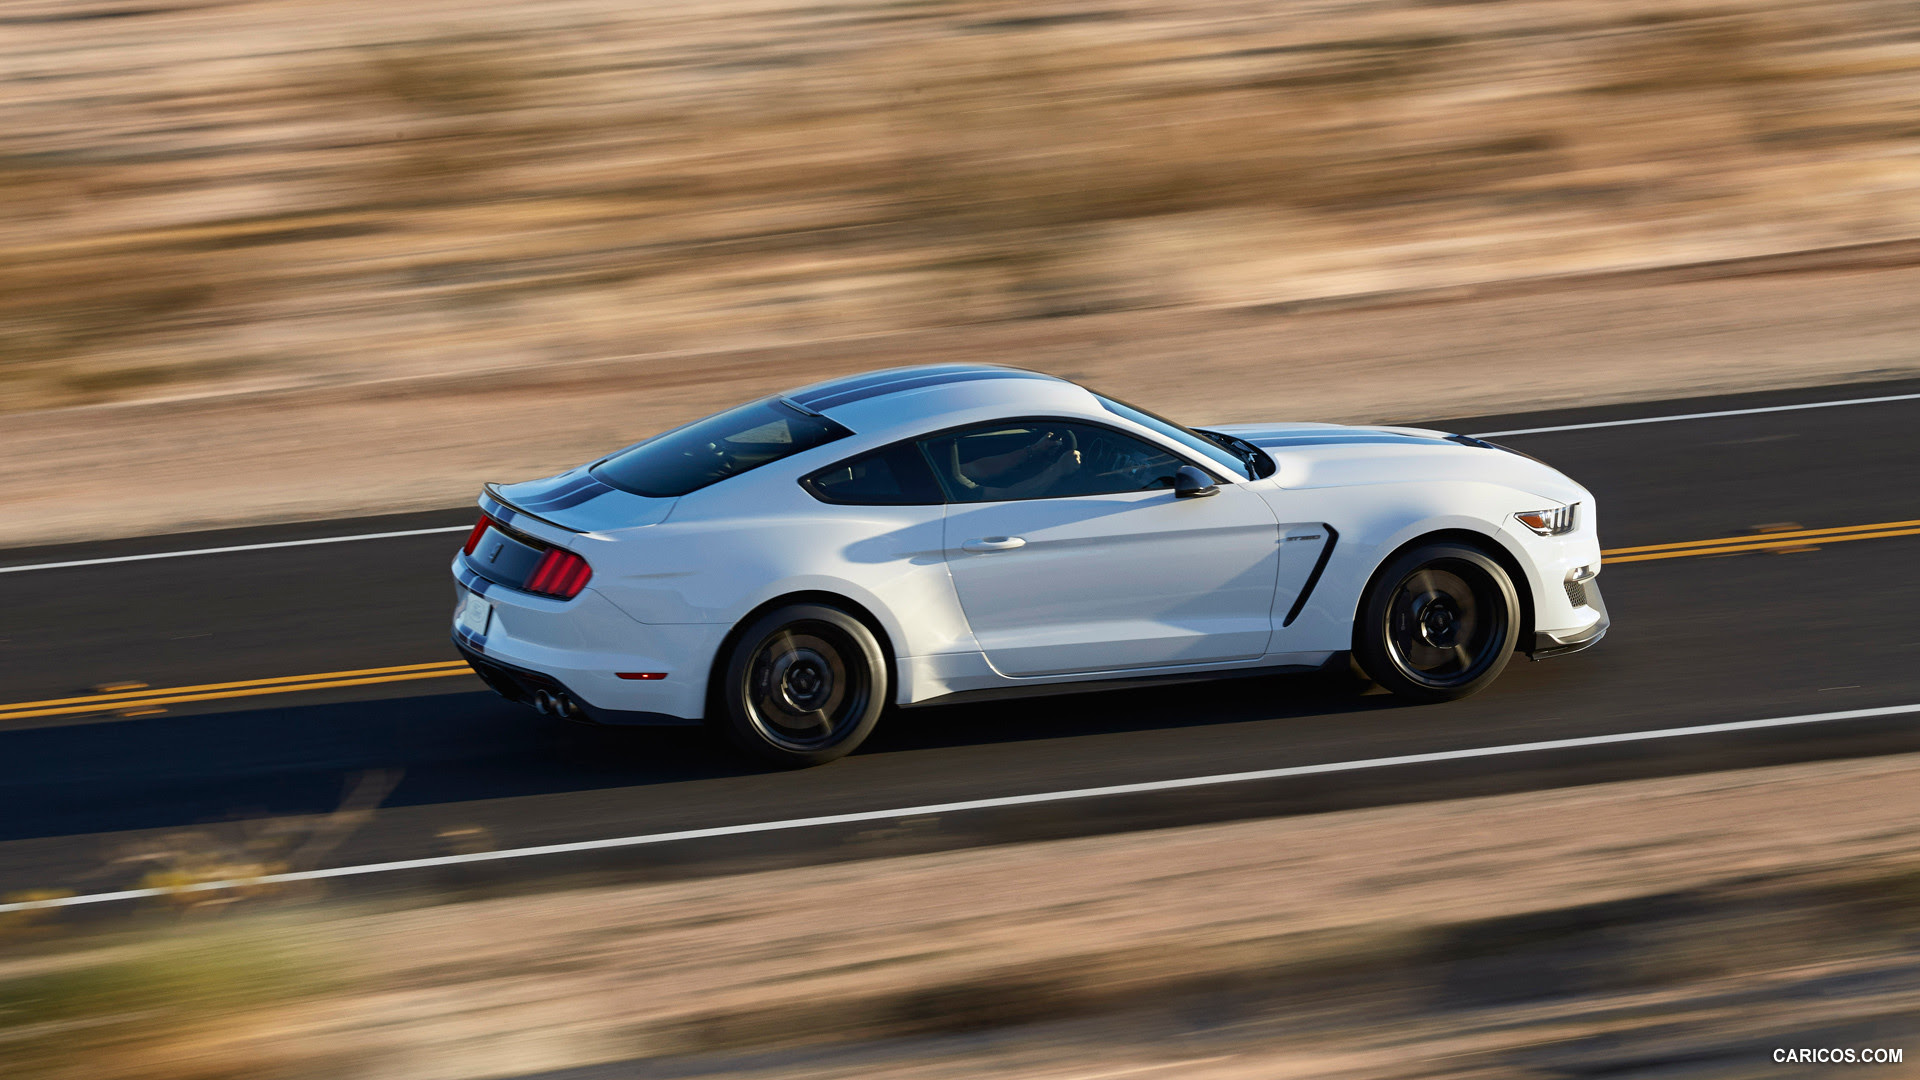 2016 Ford Mustang Shelby GT350 - Side | HD Wallpaper #7 | 1920x1080